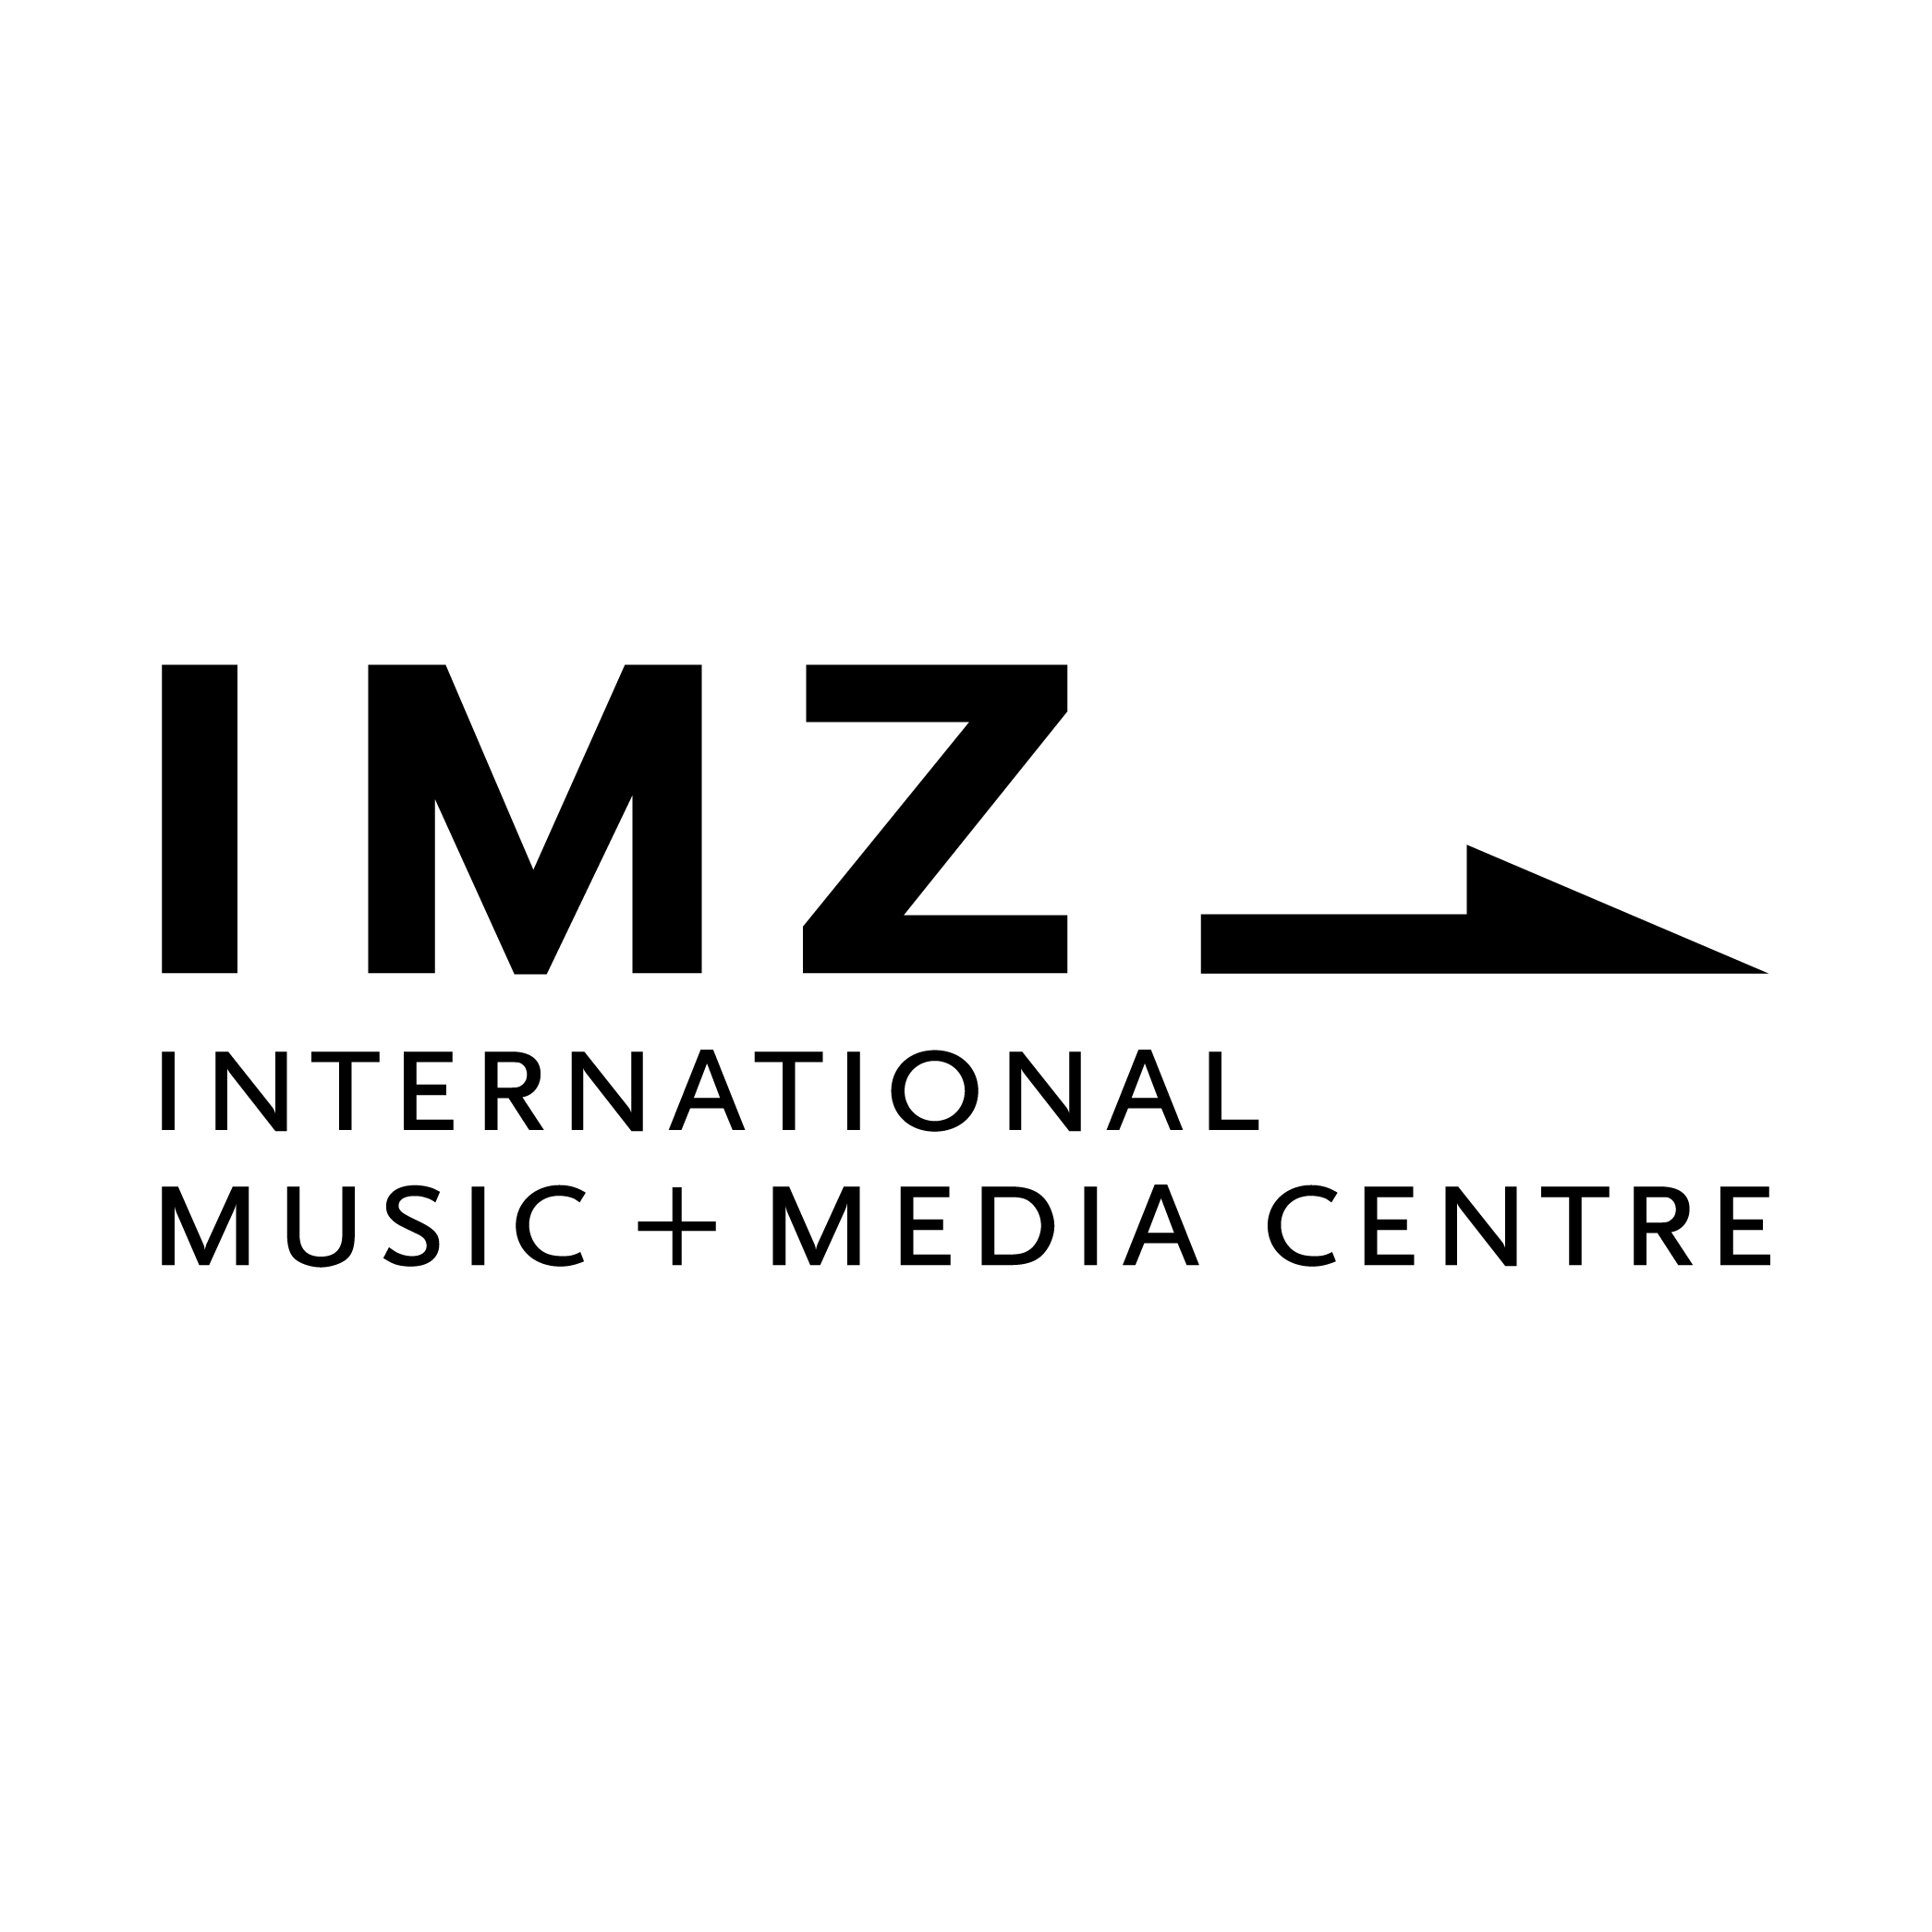 IMZ International Music + Media Centre